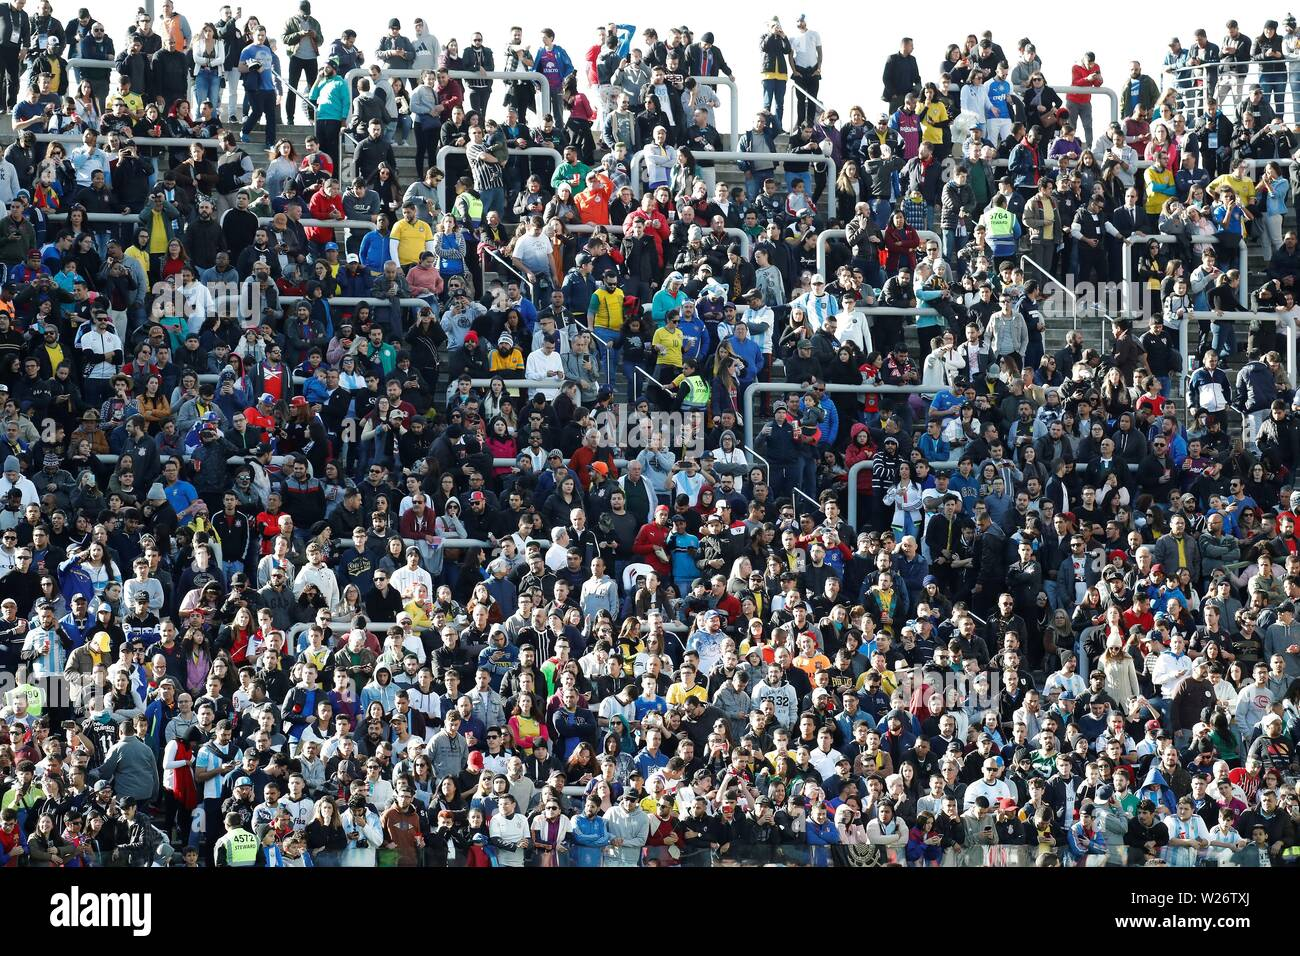 Sao Paulo, Brazil. 06th July, 2019. Fans await before the Copa America 2019 3rd place soccer match between Argentina and Chile, at Arena Corinthians Stadium in Sao Paulo, Brazil, 6 July 2019. Credit: Sebastiao Moreira/EFE/Alamy Live News Stock Photo